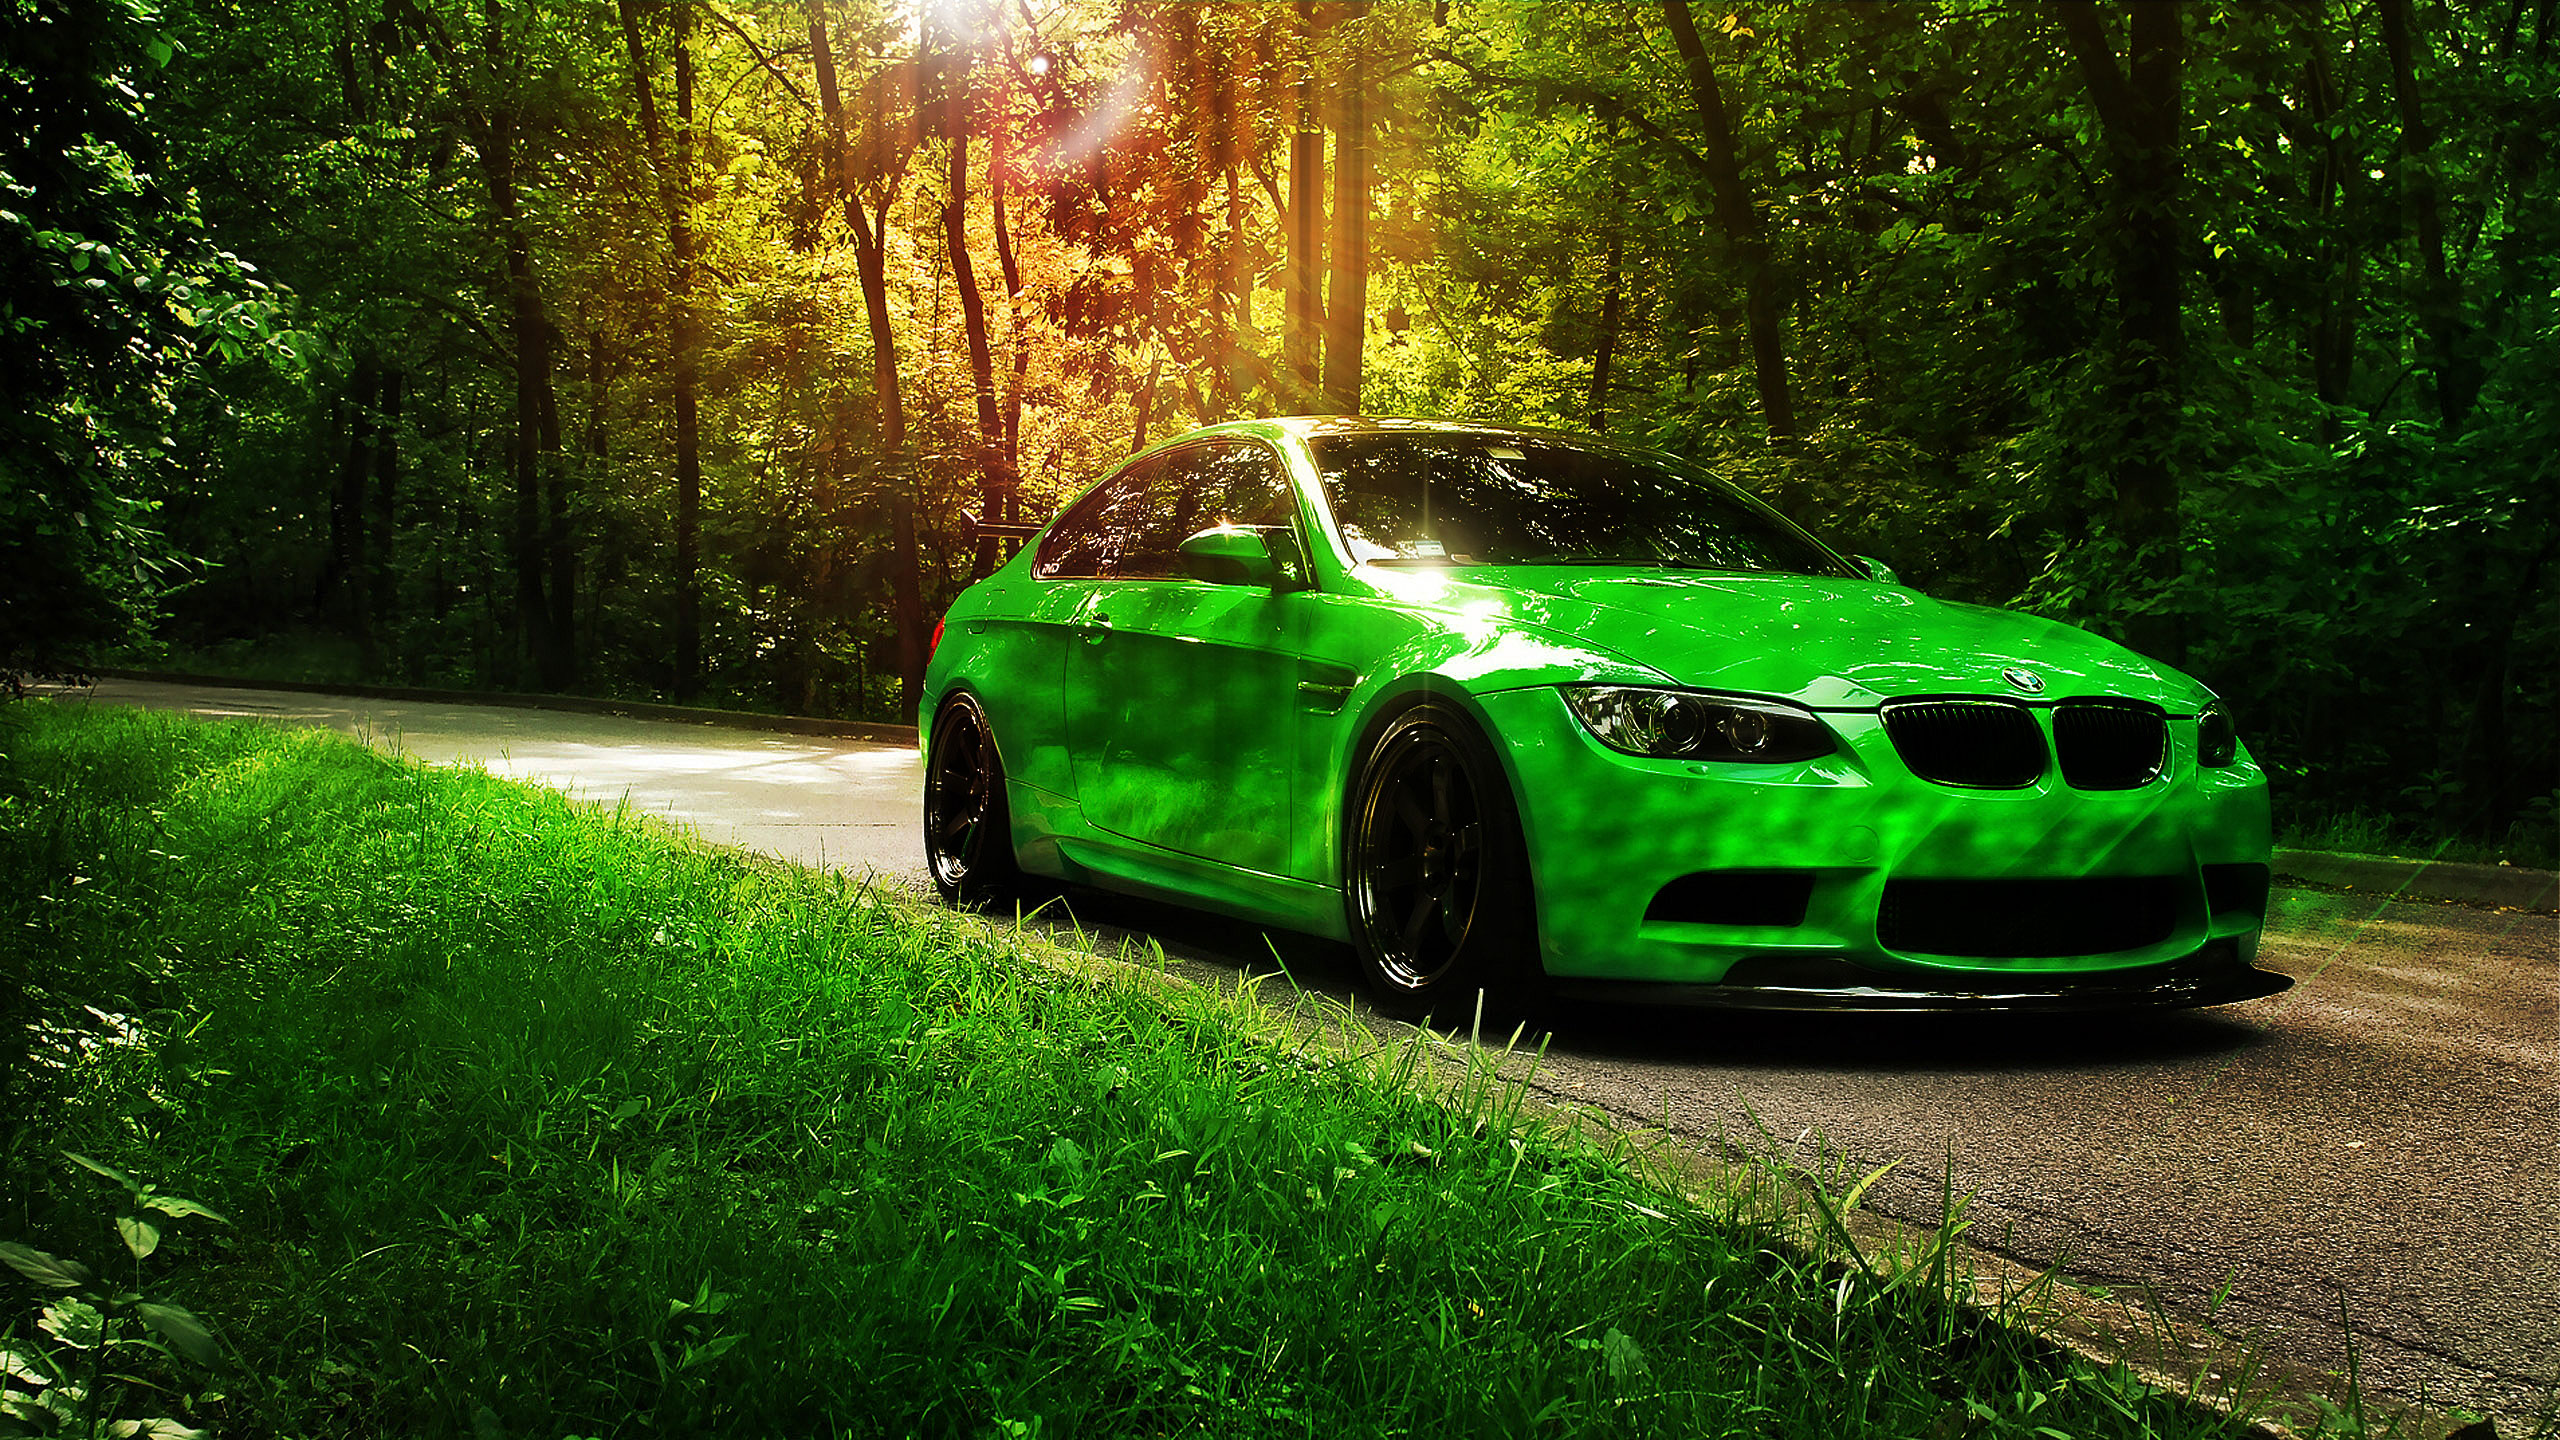 Bmw Wallpaper Hd 2560x1440 Bmw 高清壁纸 桌面背景 2560x1440 Id 499641 Wallpaper Abyss